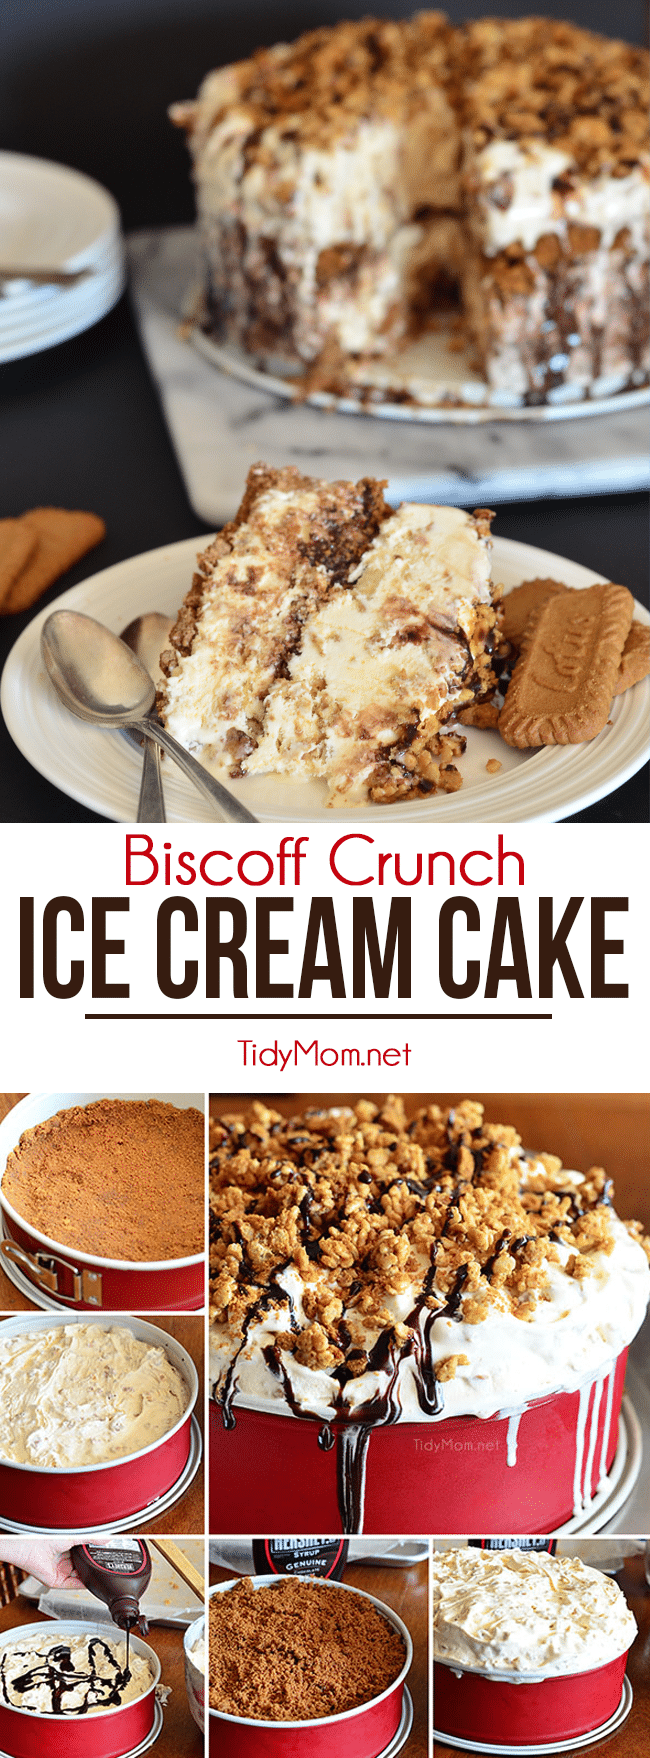 This easy ice cream cake is made with Biscoff cookies, vanilla ice cream, Biscoff Spread, and rice cereal. BISCOFF CRUNCH ICE CREAM  CAKE recipe at TidyMom.net